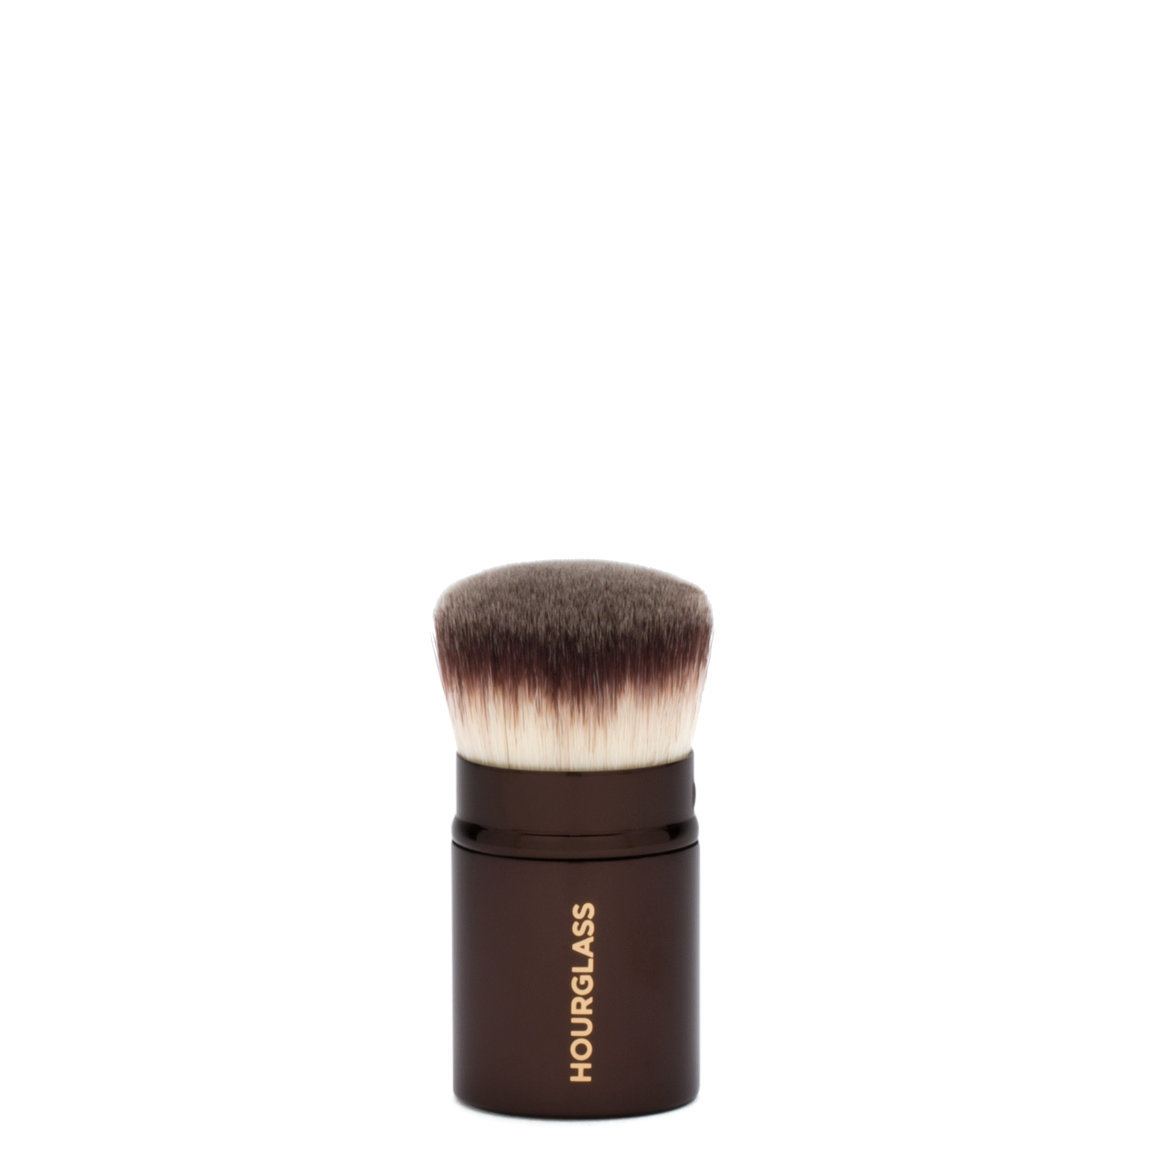 Hourglass Retractable Kabuki Brush product smear.